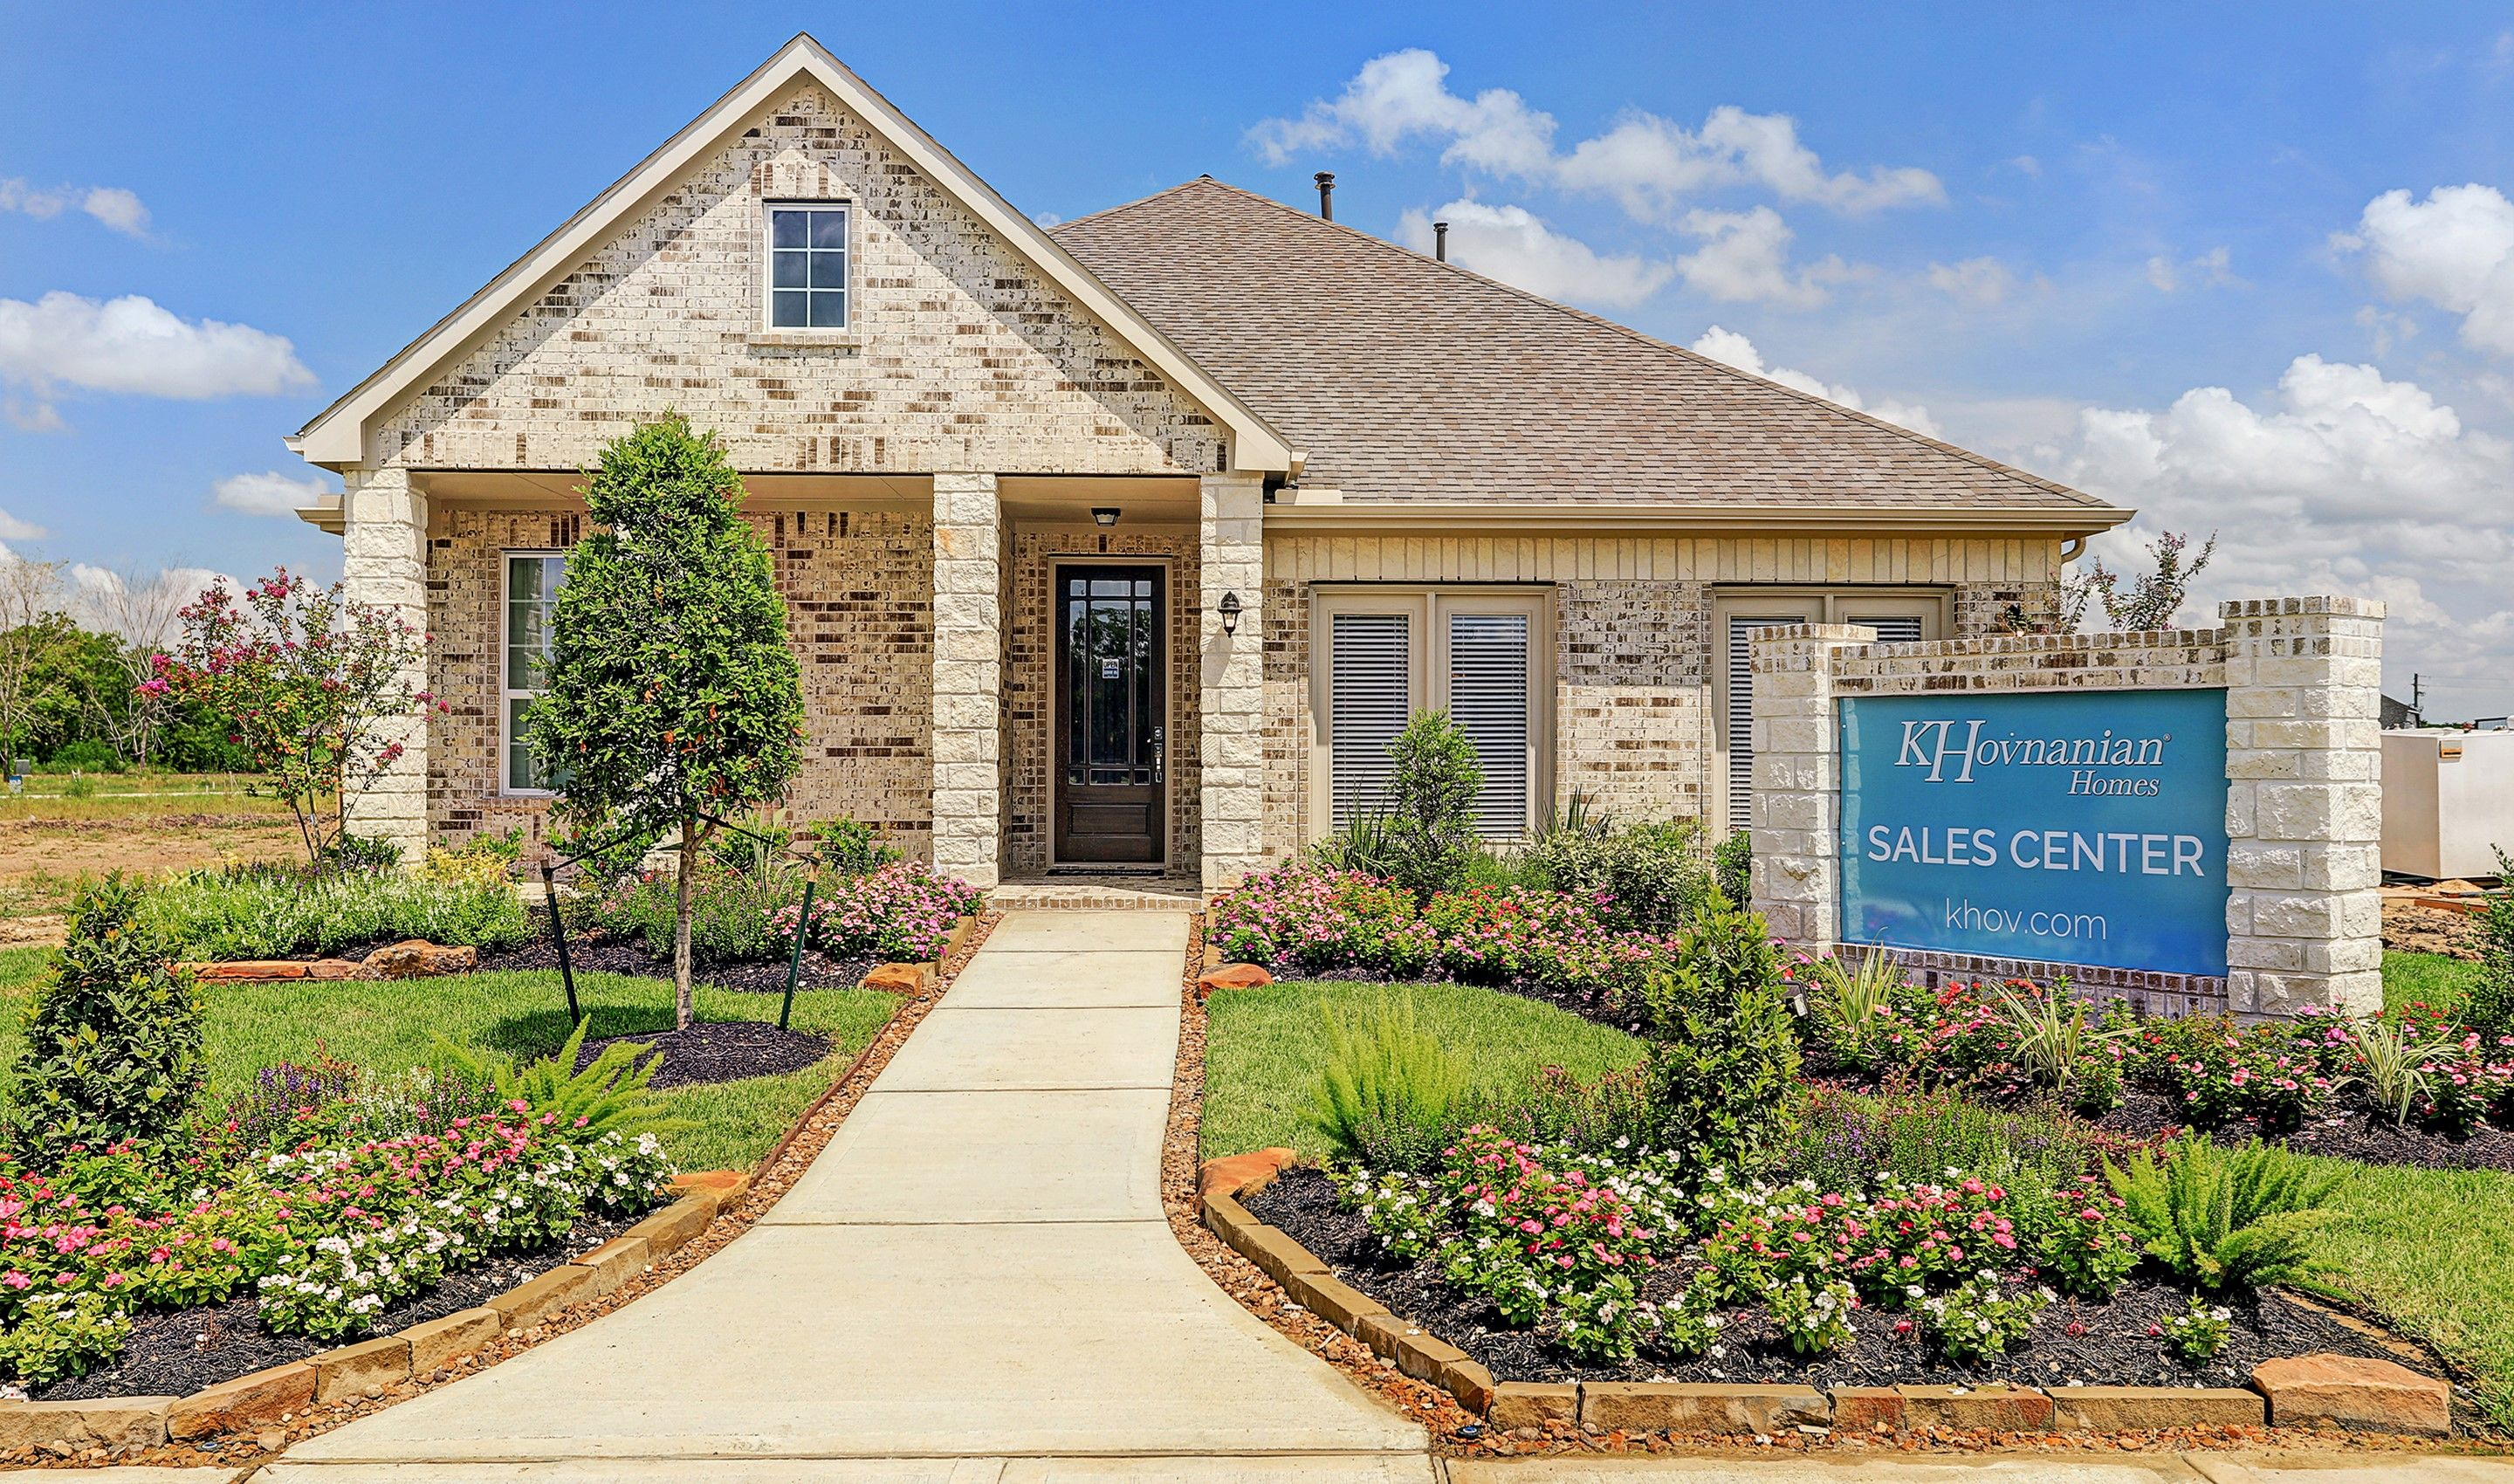 Ellington Field Joint Reserve Base New Homes for Sale